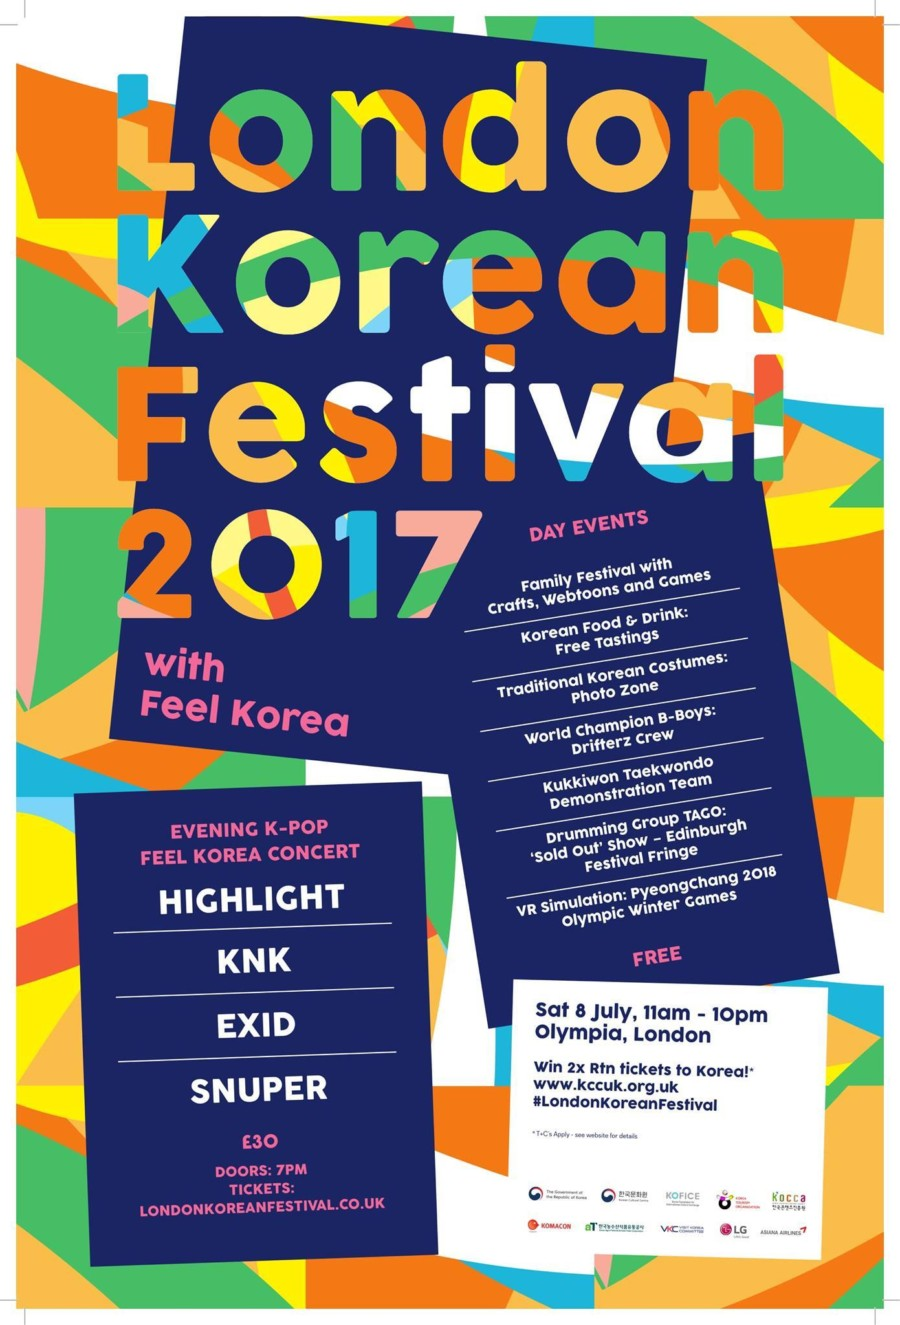 'LONDON KOREAN FESTIVAL in Olympia London' 8 July 2017 11.00 – 22.00